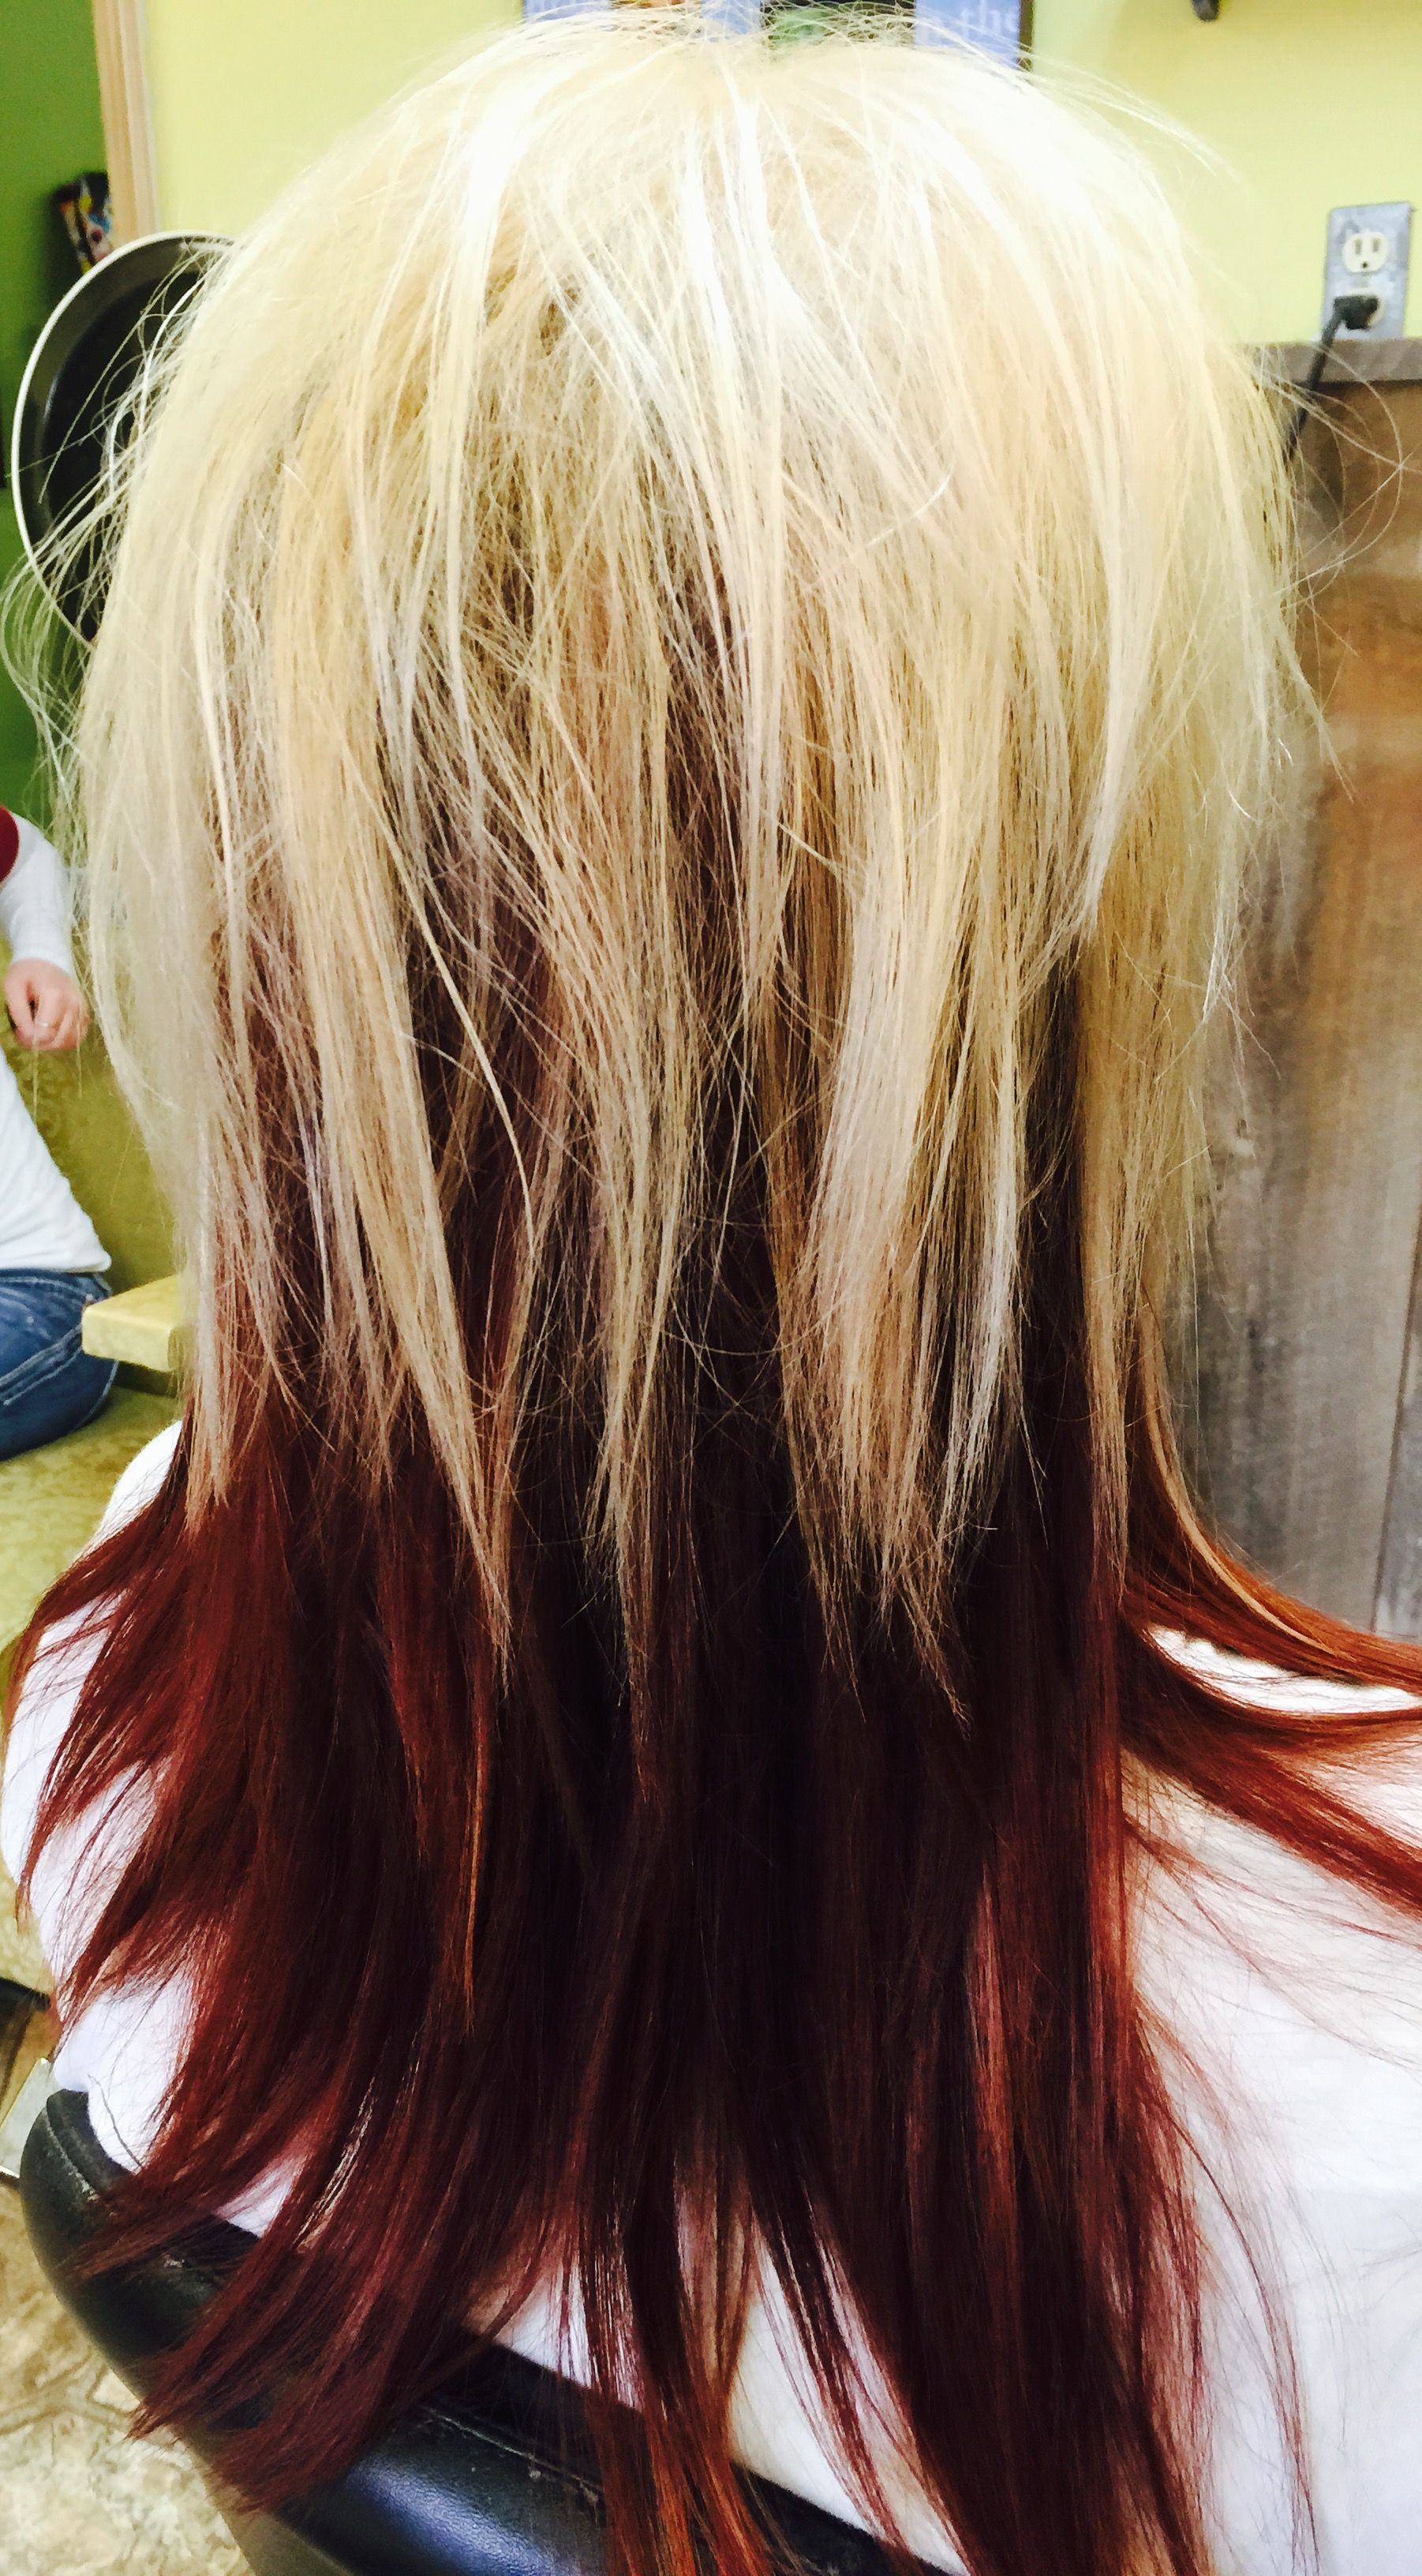 Vibrant Red Base With White Highlights Hair By Kathy Smith Ak